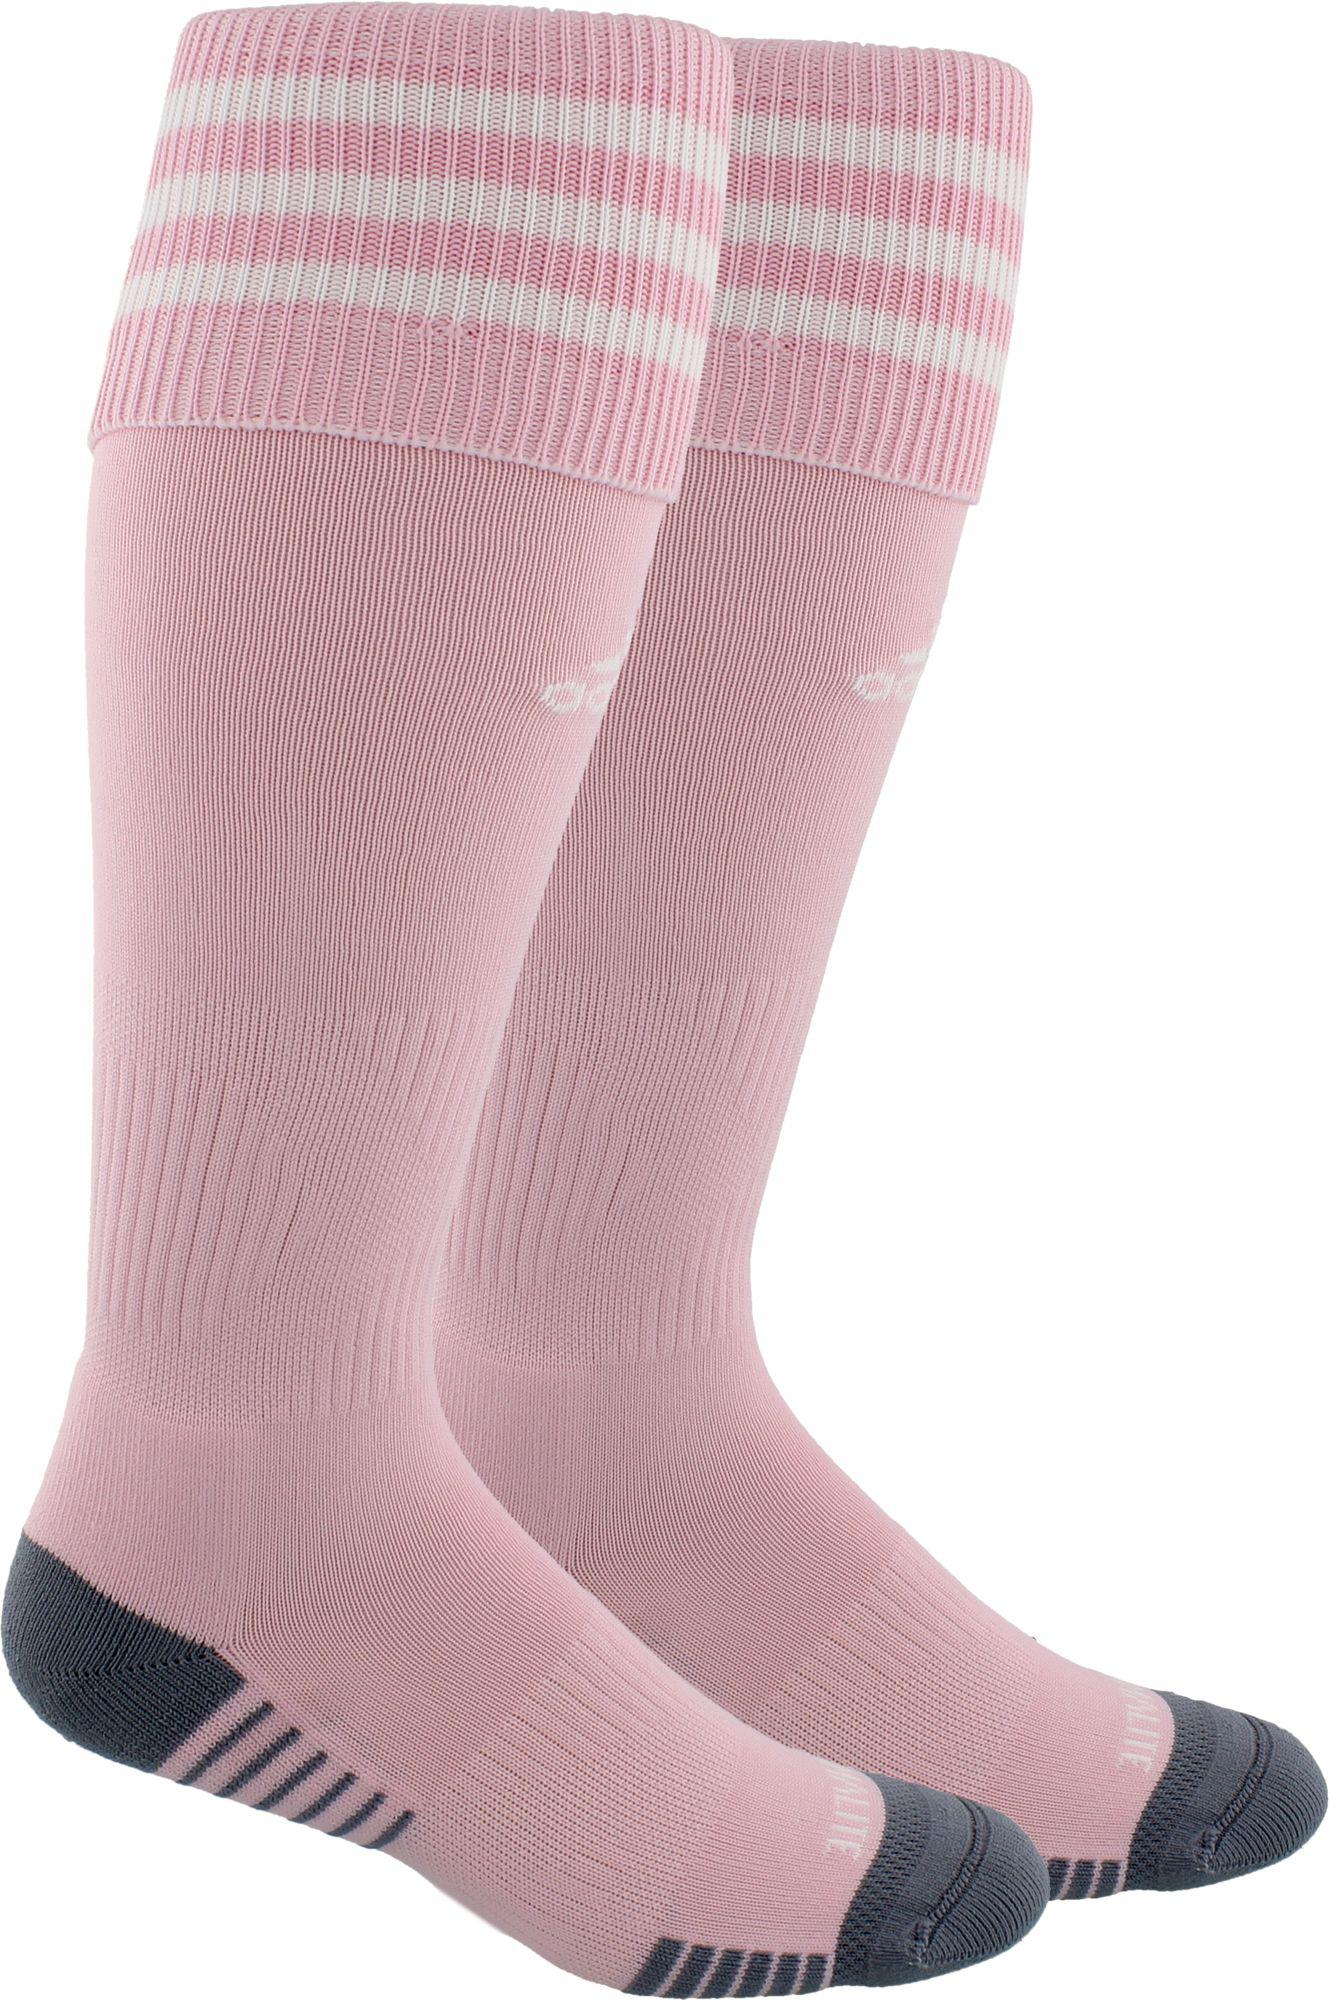 762e9565e593 Lyst - adidas Copa Zone Cushion Iii Soccer Socks in Pink for Men